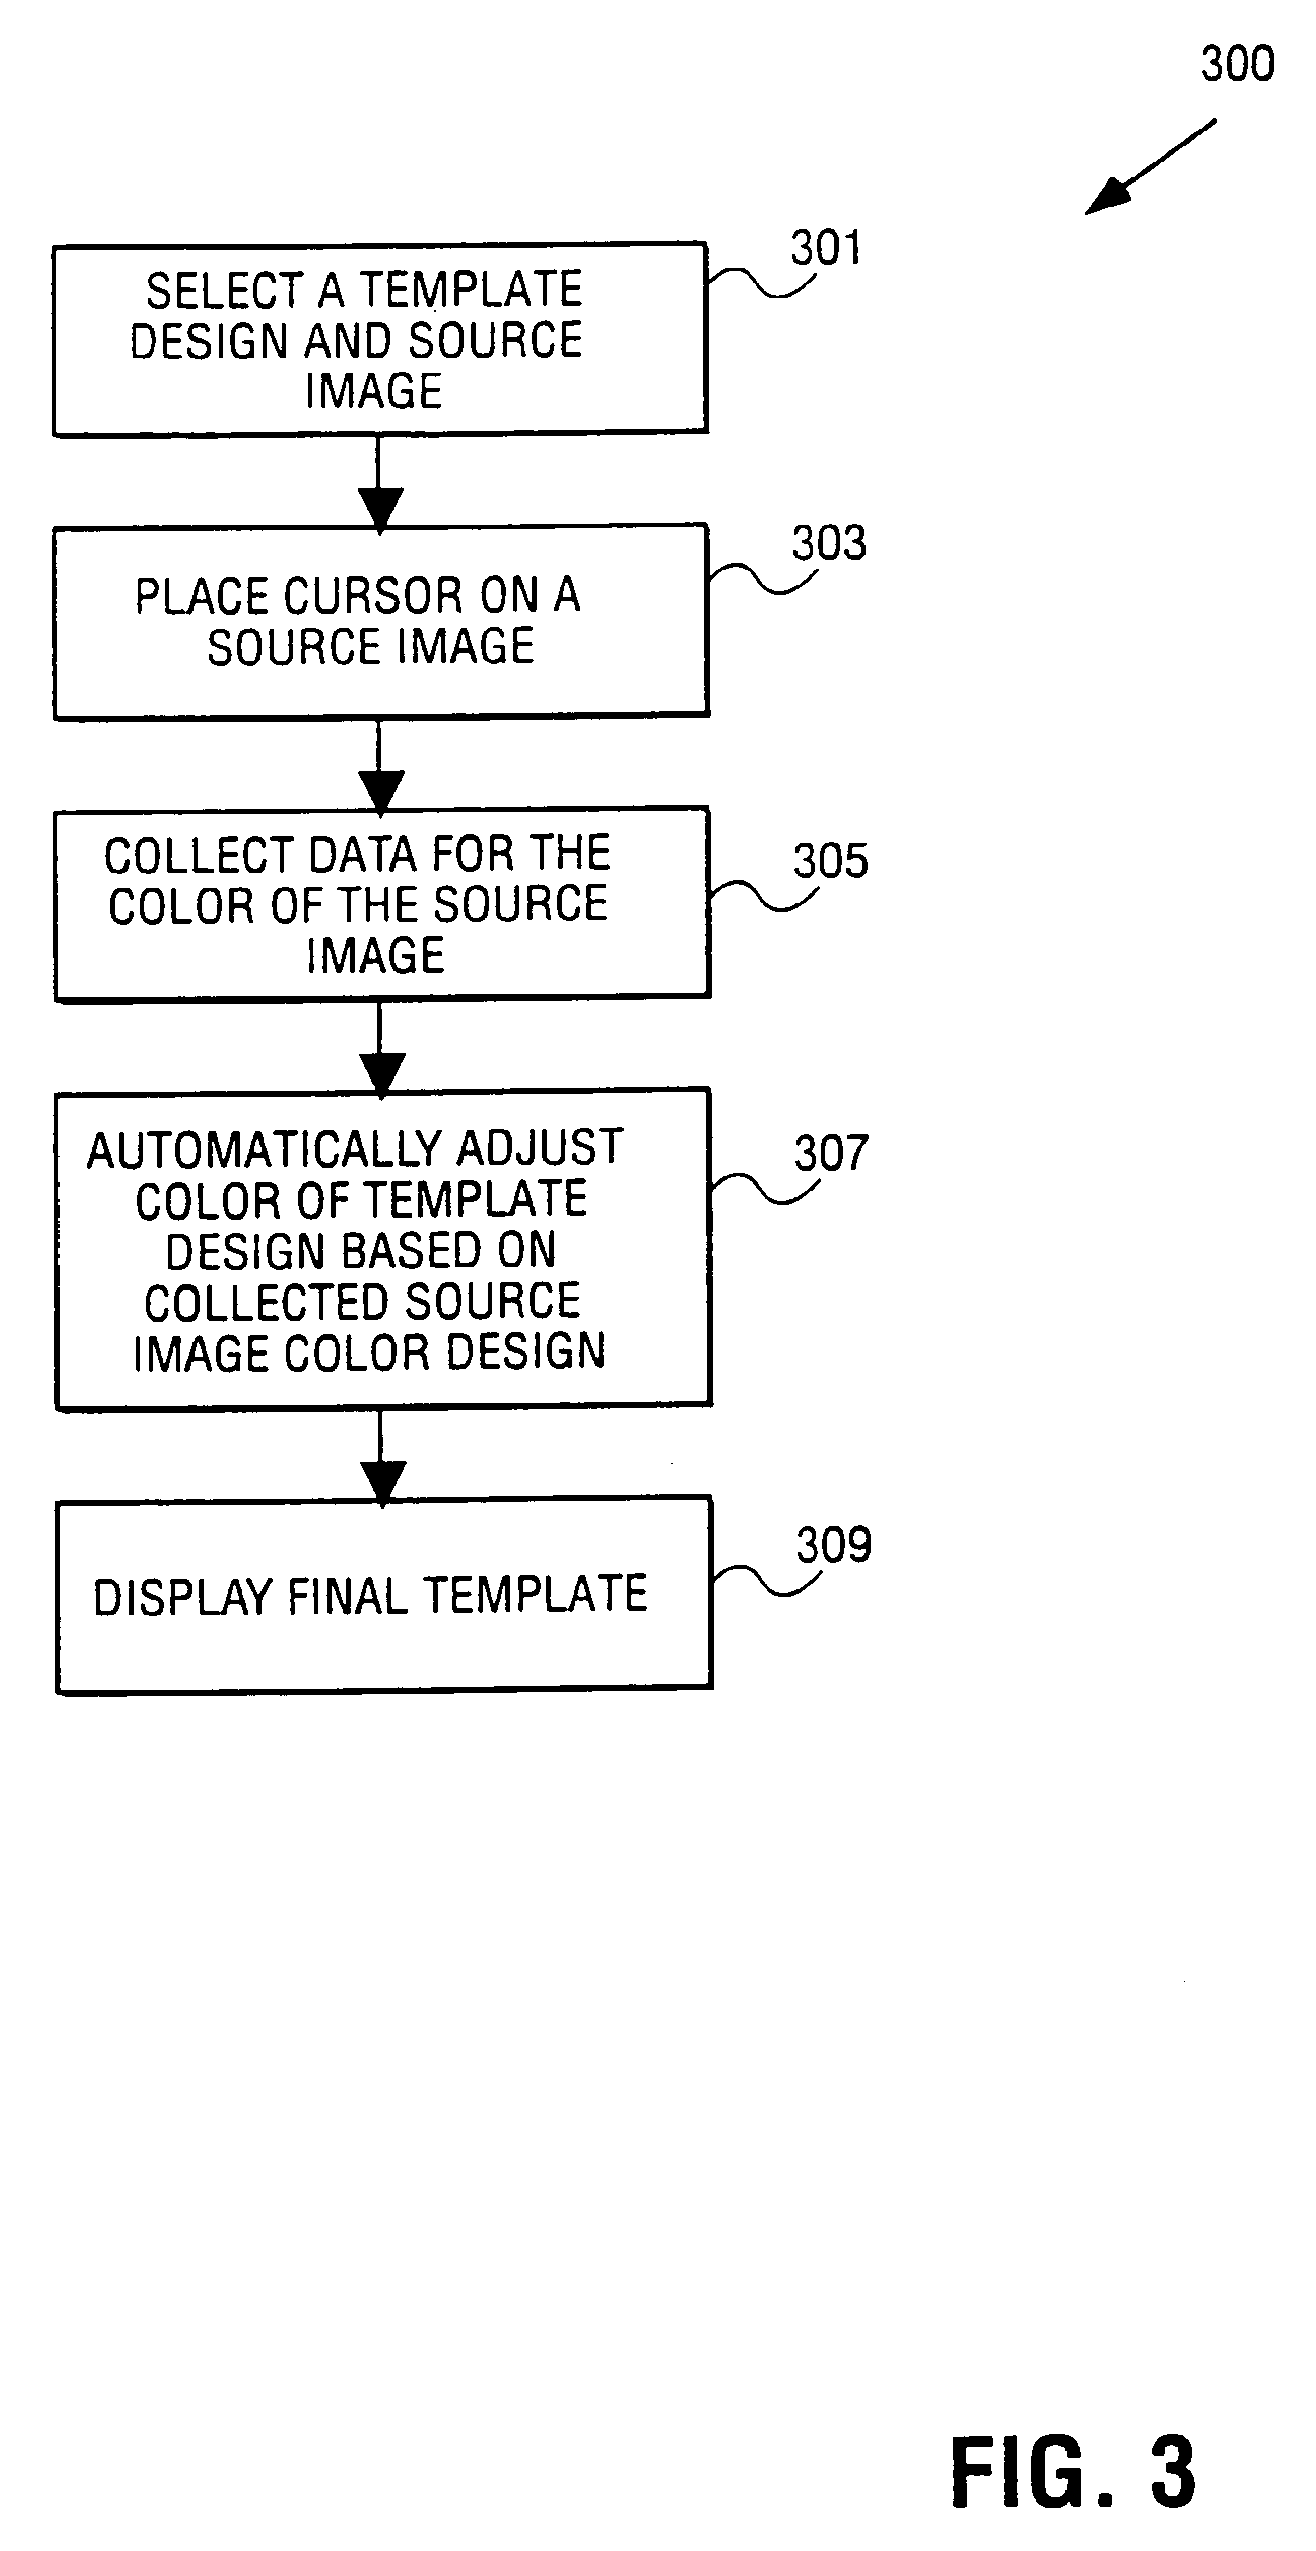 patent specification template - patent us7538776 automatic color adjustment of a